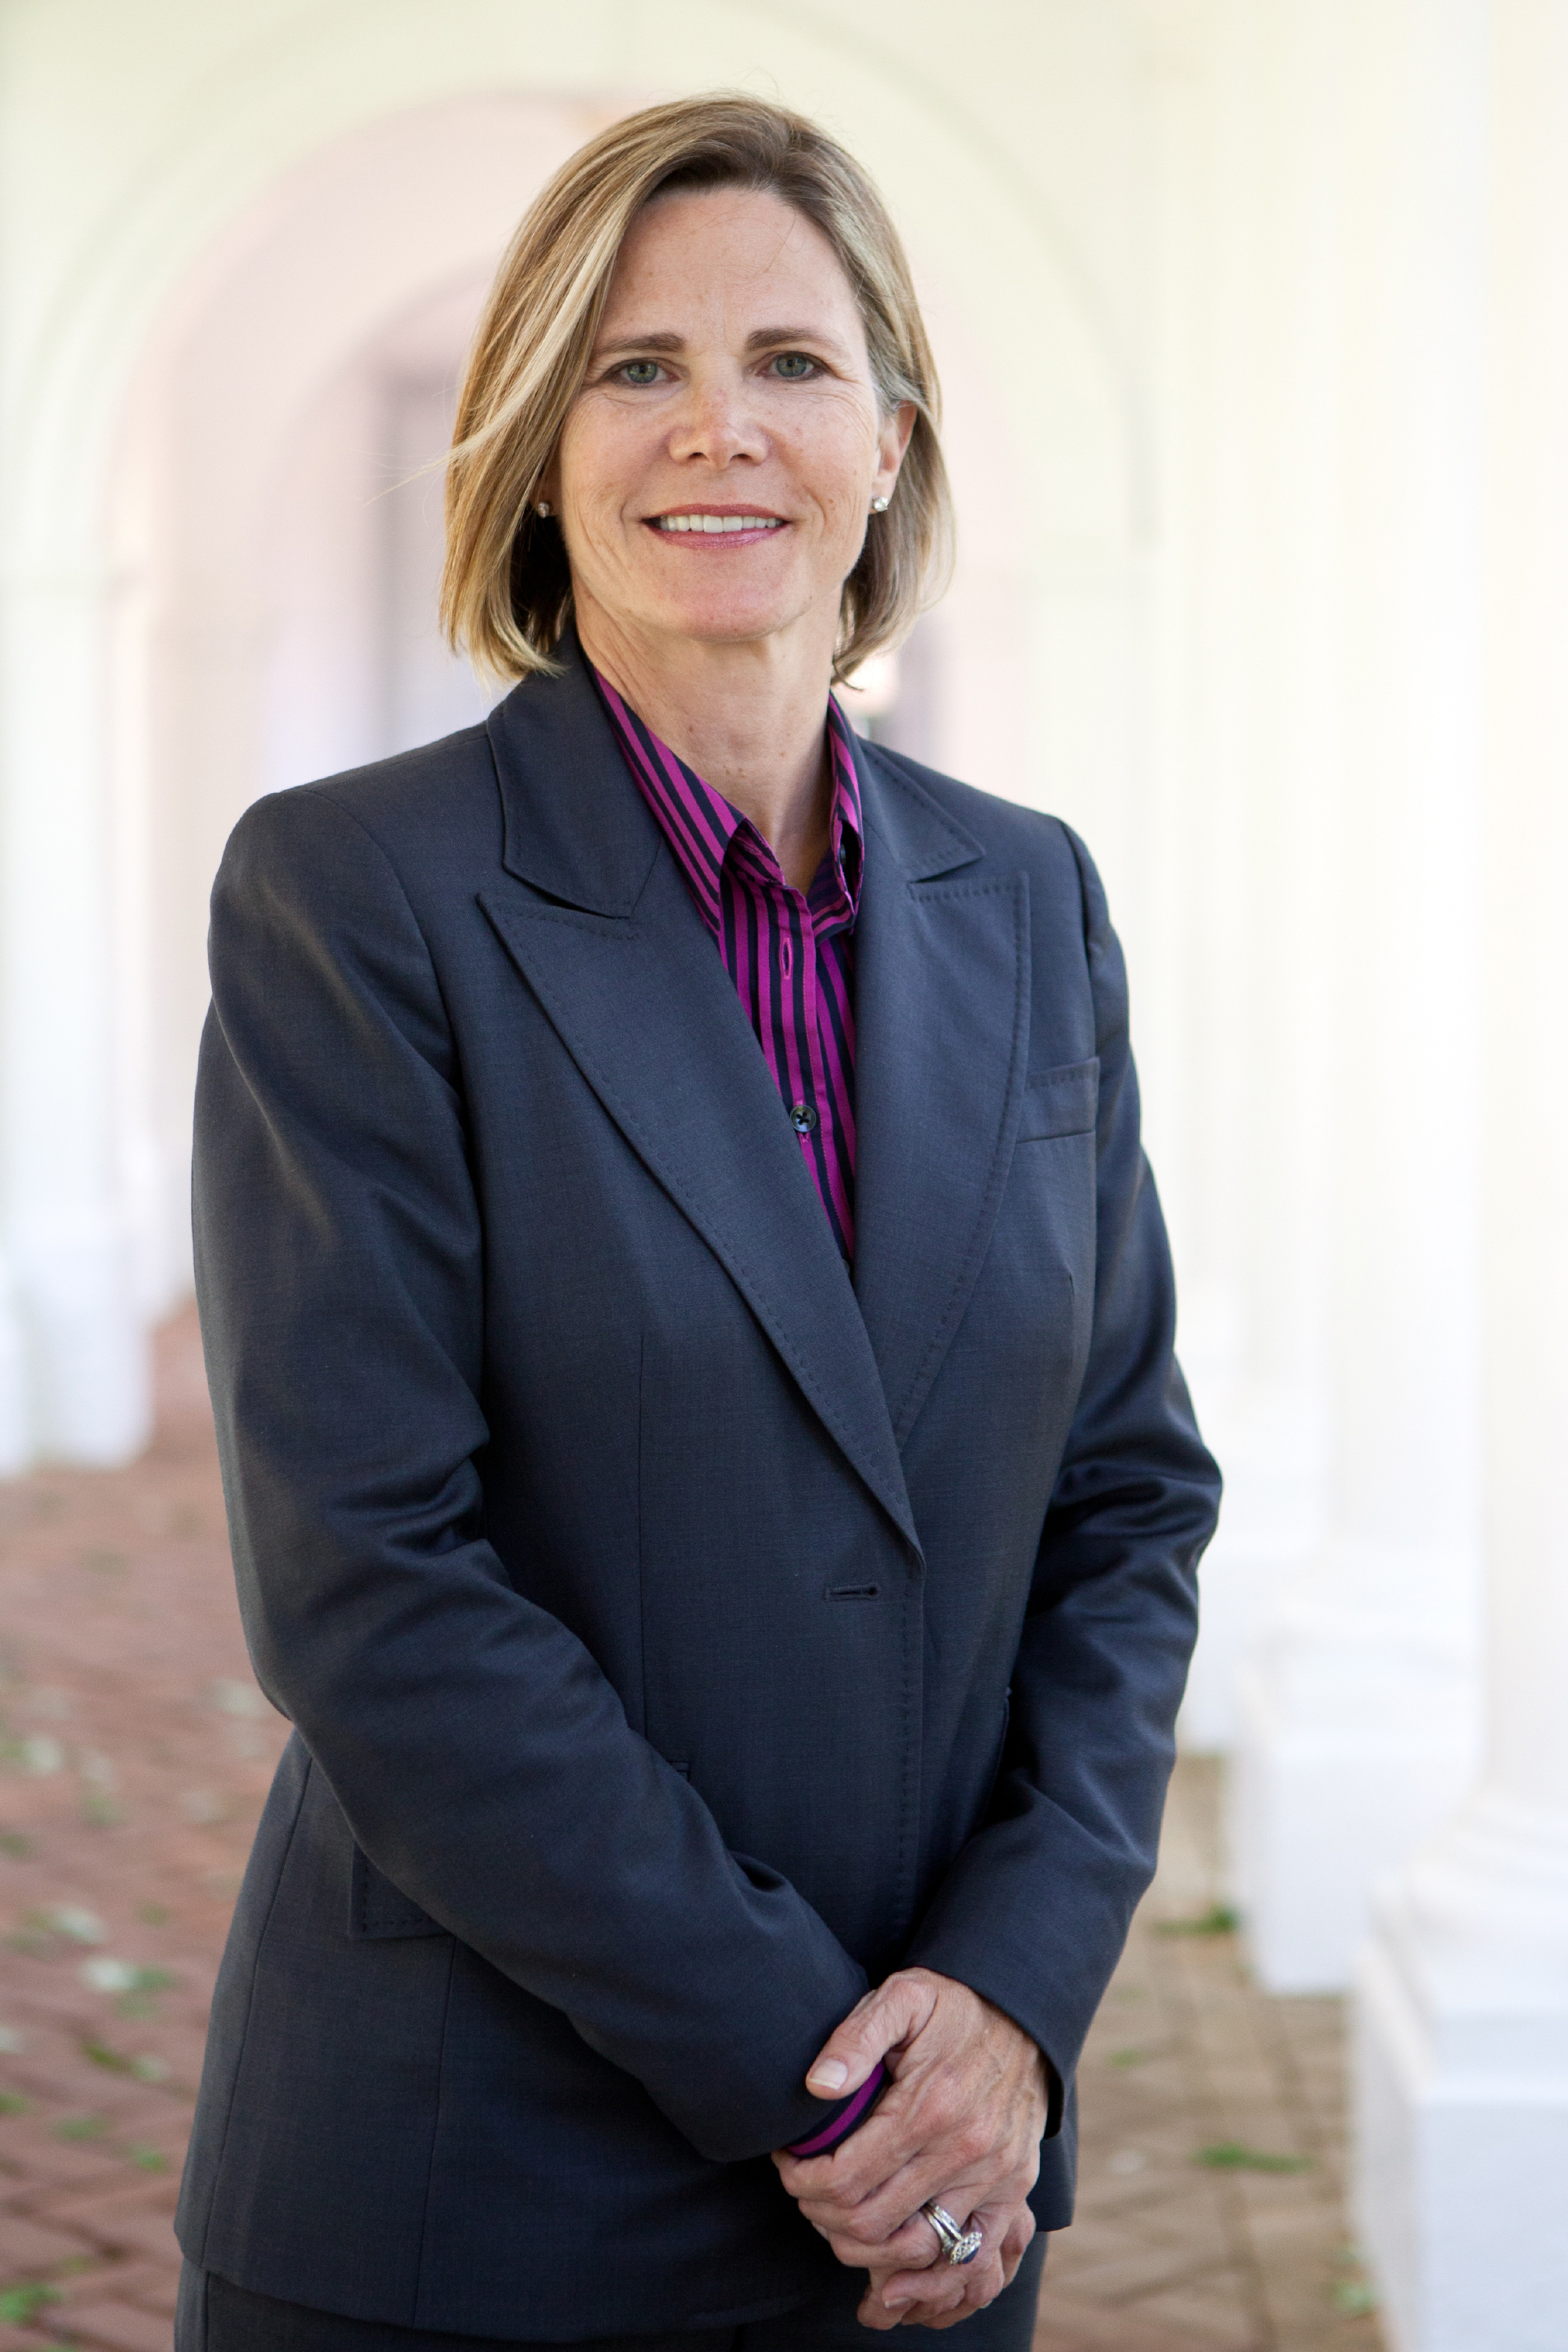 University Of Virginia Launches Search For It Leadership